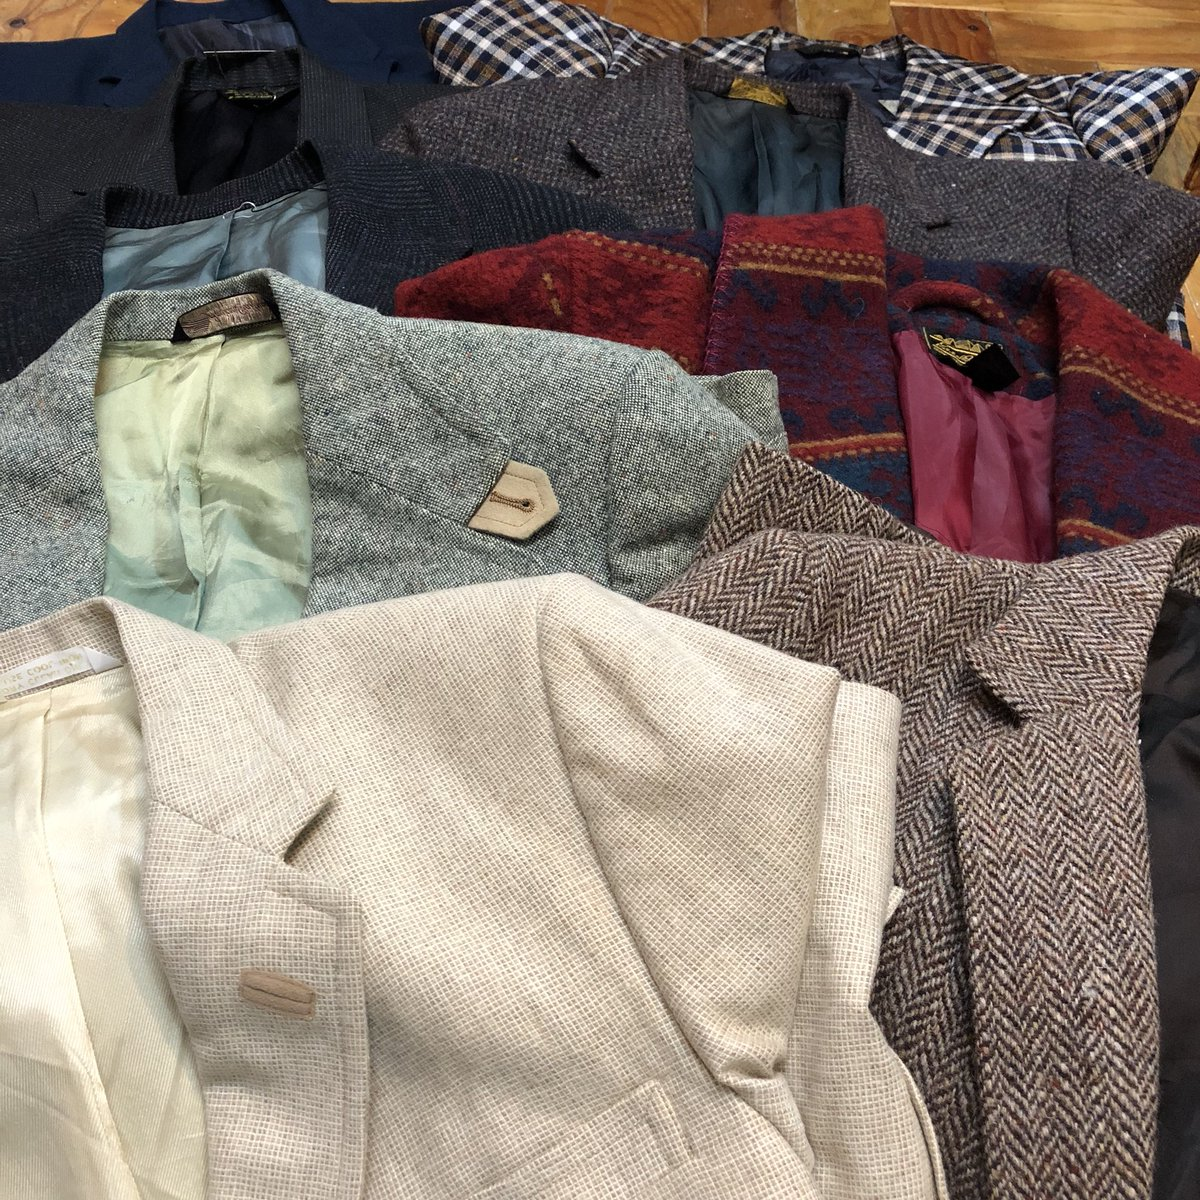 test ツイッターメディア - 週末追加。  70〜90's  tailored jacket  Harris Tweed Eddie bauer JC Penney Brooks Brothers  etc  店頭出しも少なくなってきたんでババっと追加して〼  #jacket #volar #used #古着 https://t.co/qKWKnU5sa4